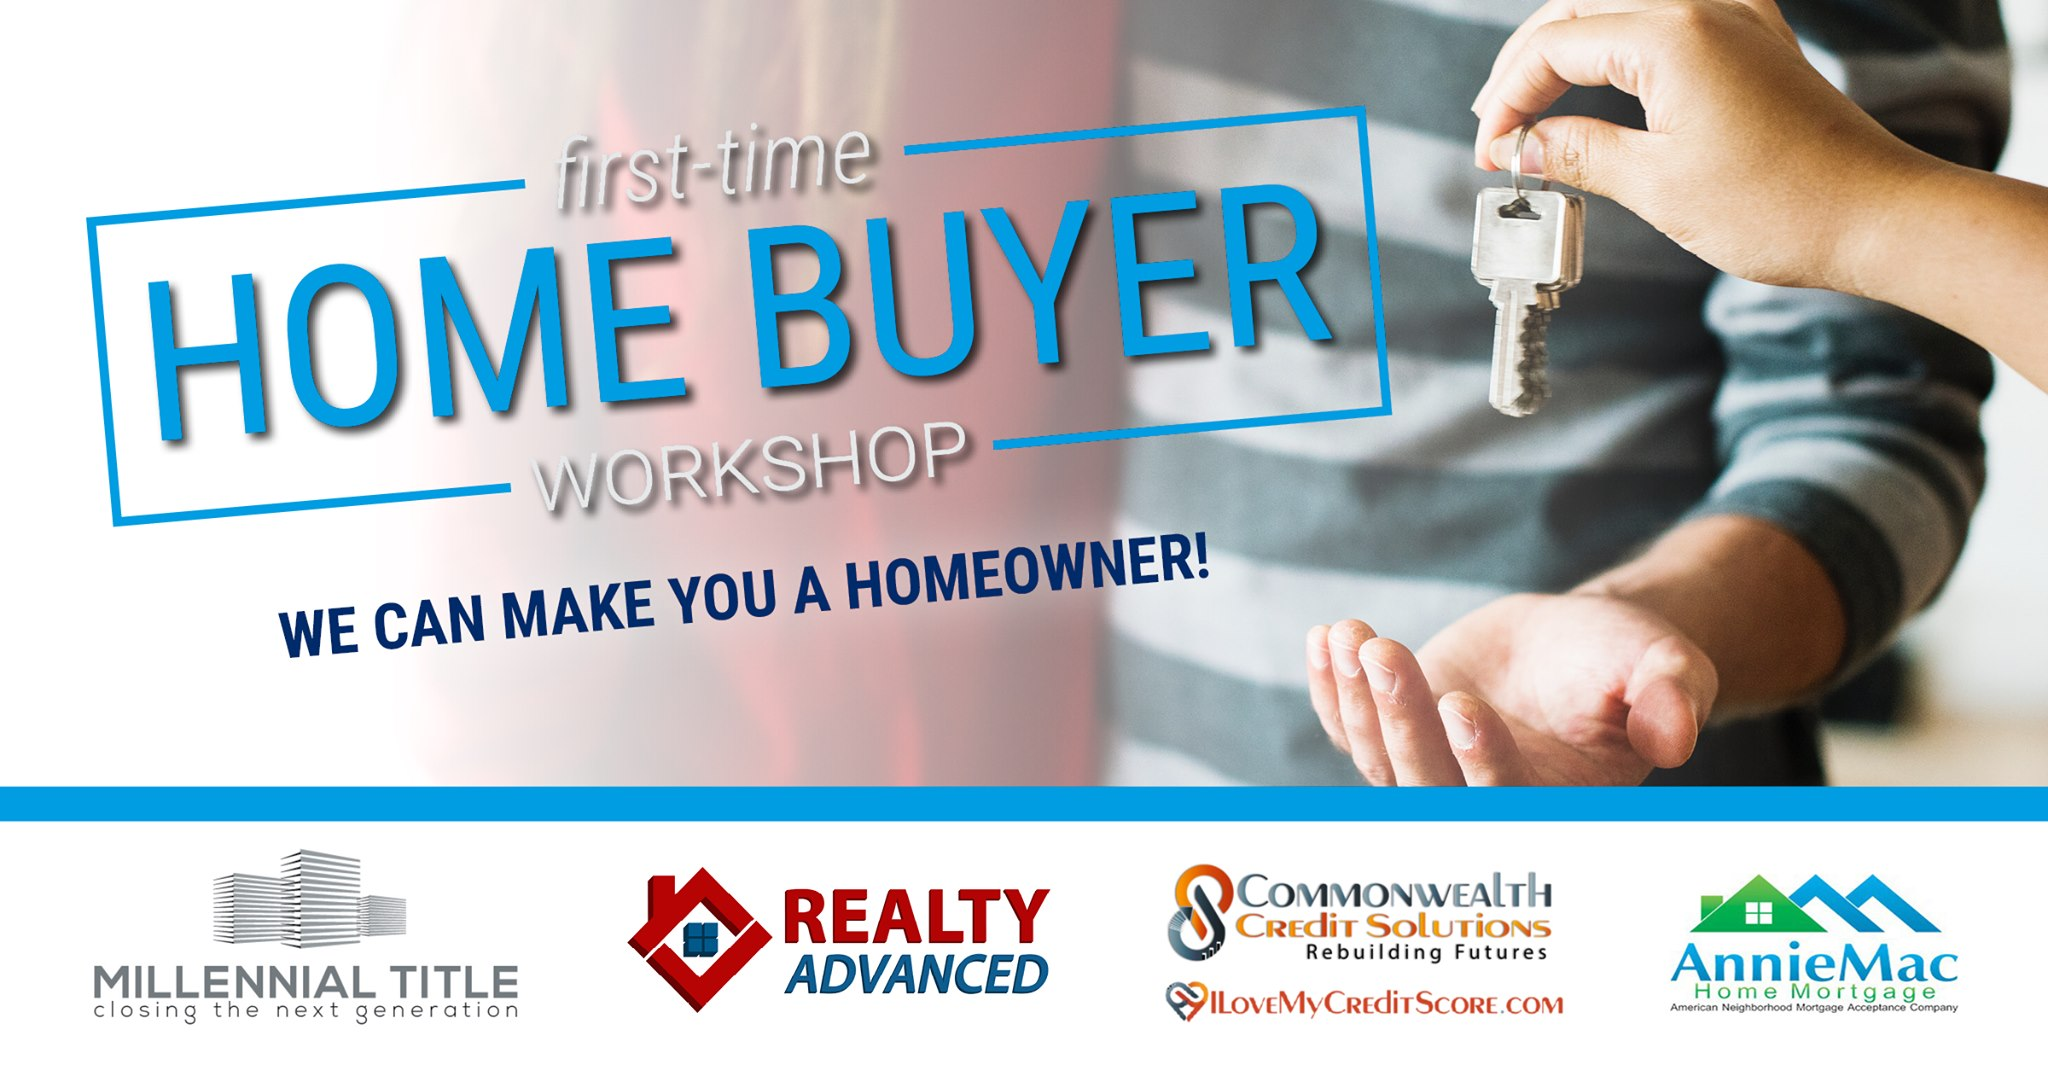 First-time Home Buyer Workshop